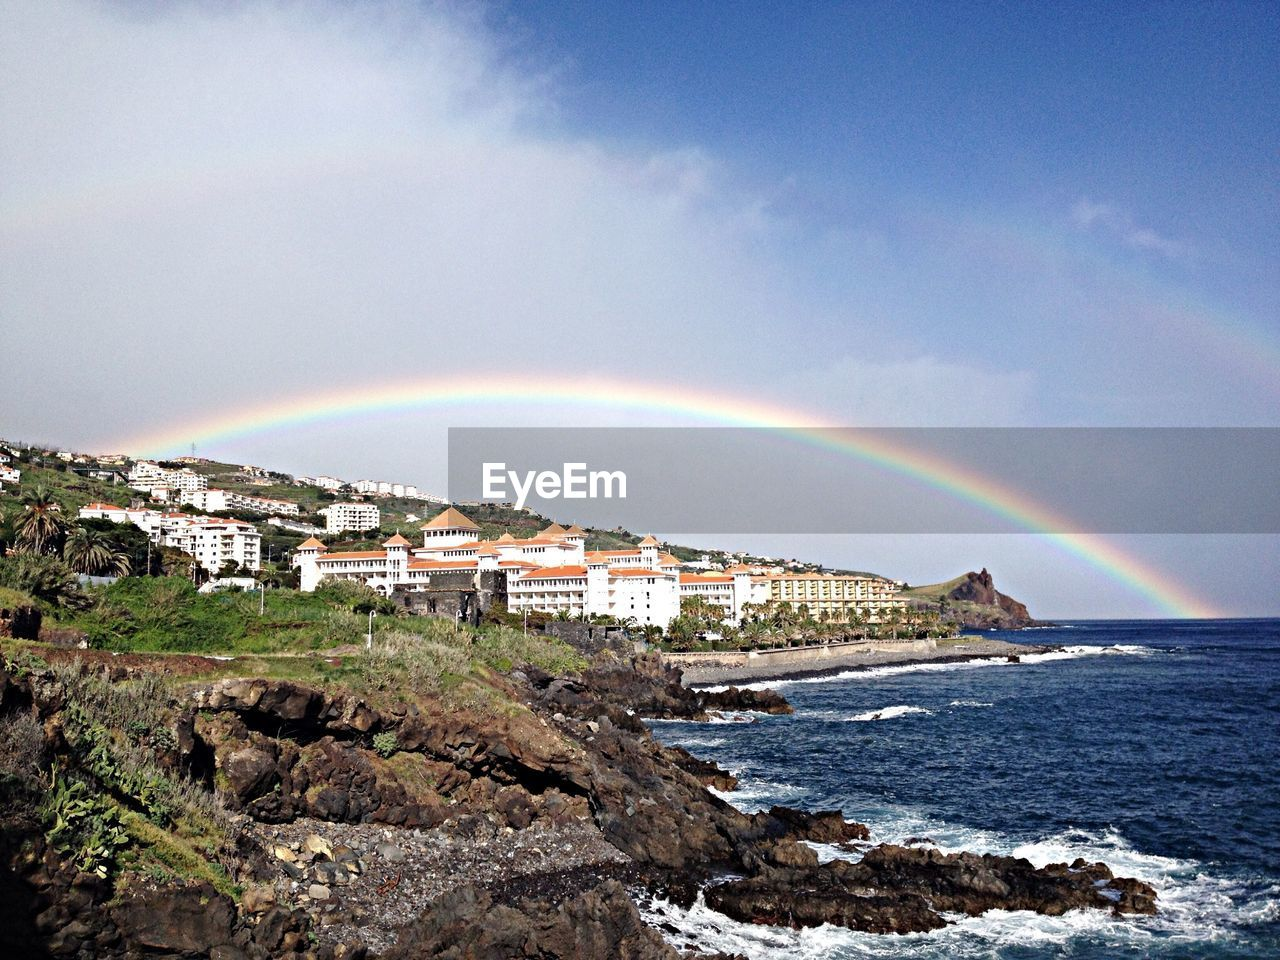 rainbow, water, sky, beauty in nature, scenics - nature, double rainbow, sea, nature, architecture, no people, cloud - sky, arch, built structure, day, multi colored, rock - object, building exterior, idyllic, outdoors